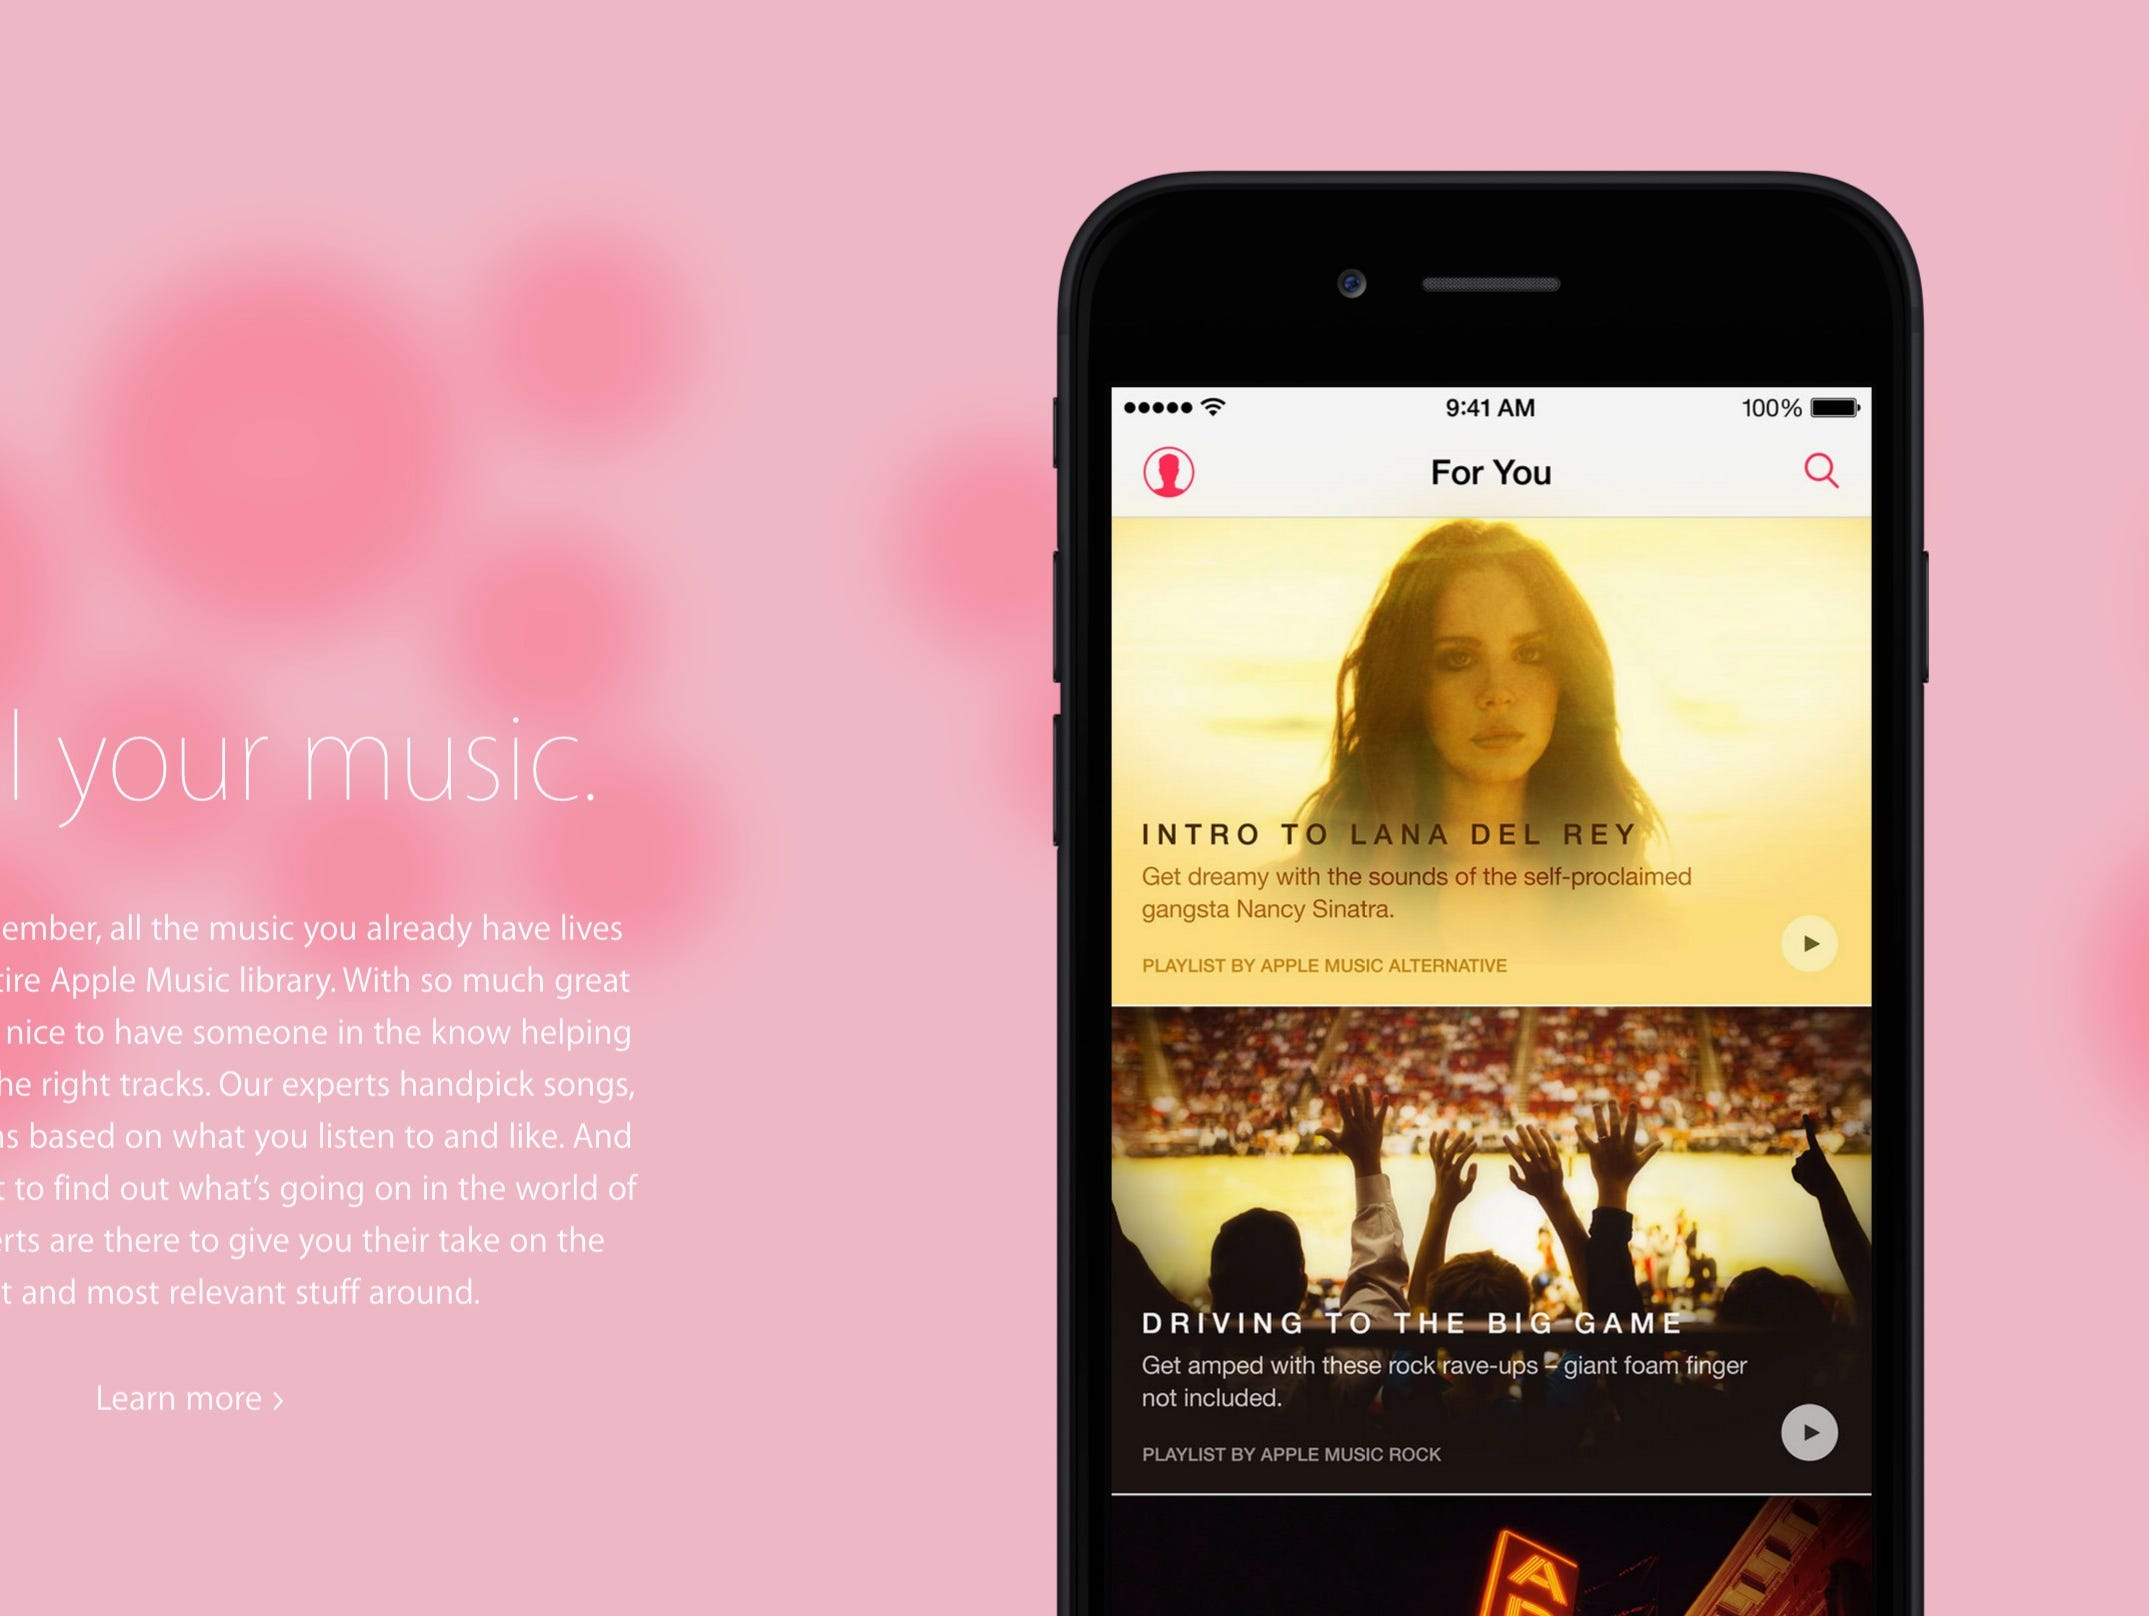 Apple Music is a monthly $9.99 music subscription service